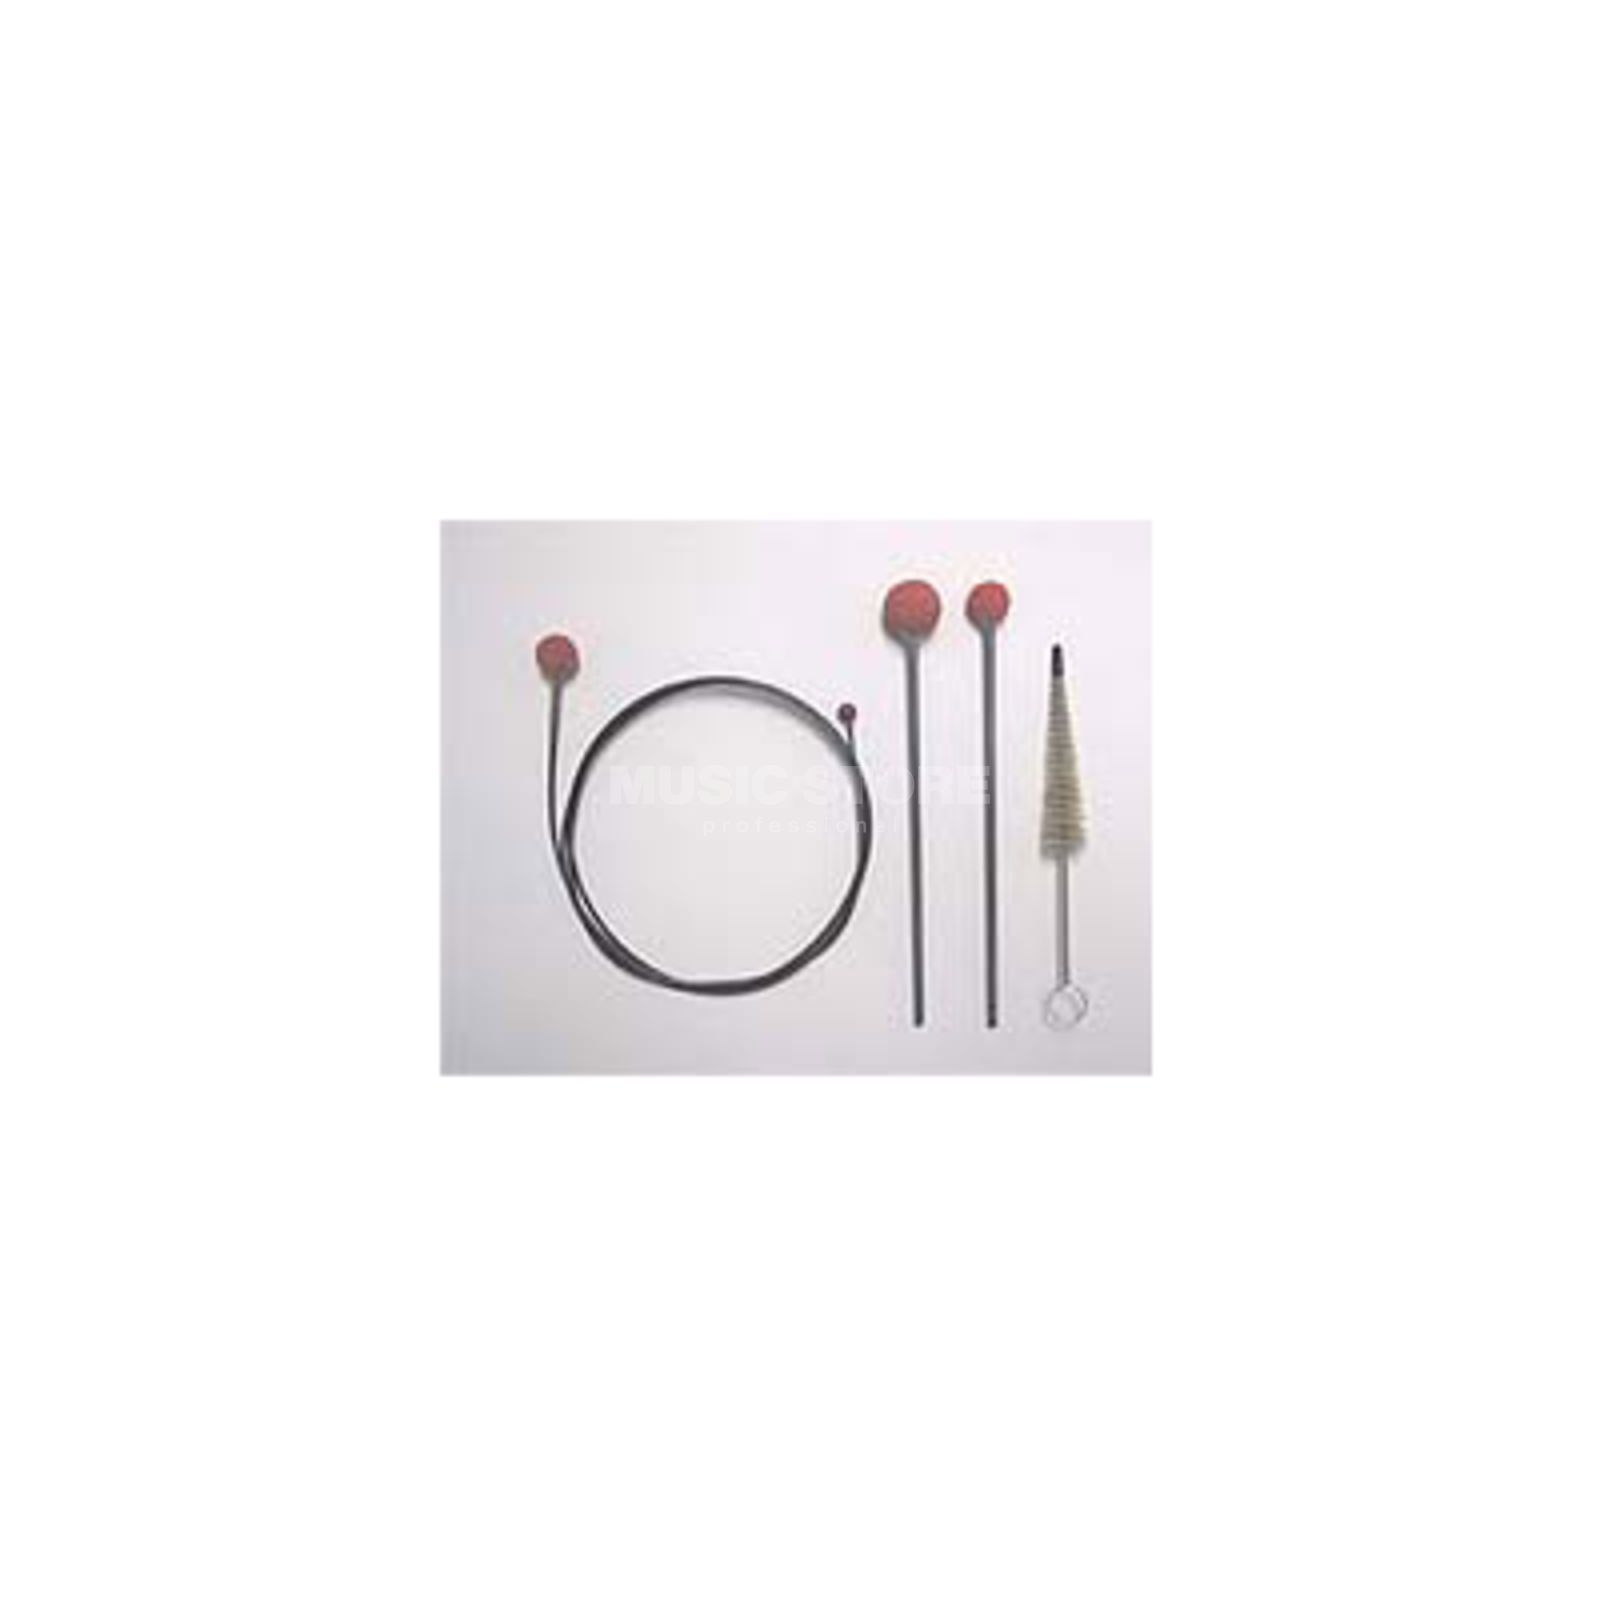 REKA Cleaning Set for Tuba/Sausophone/Helicon Produktbillede